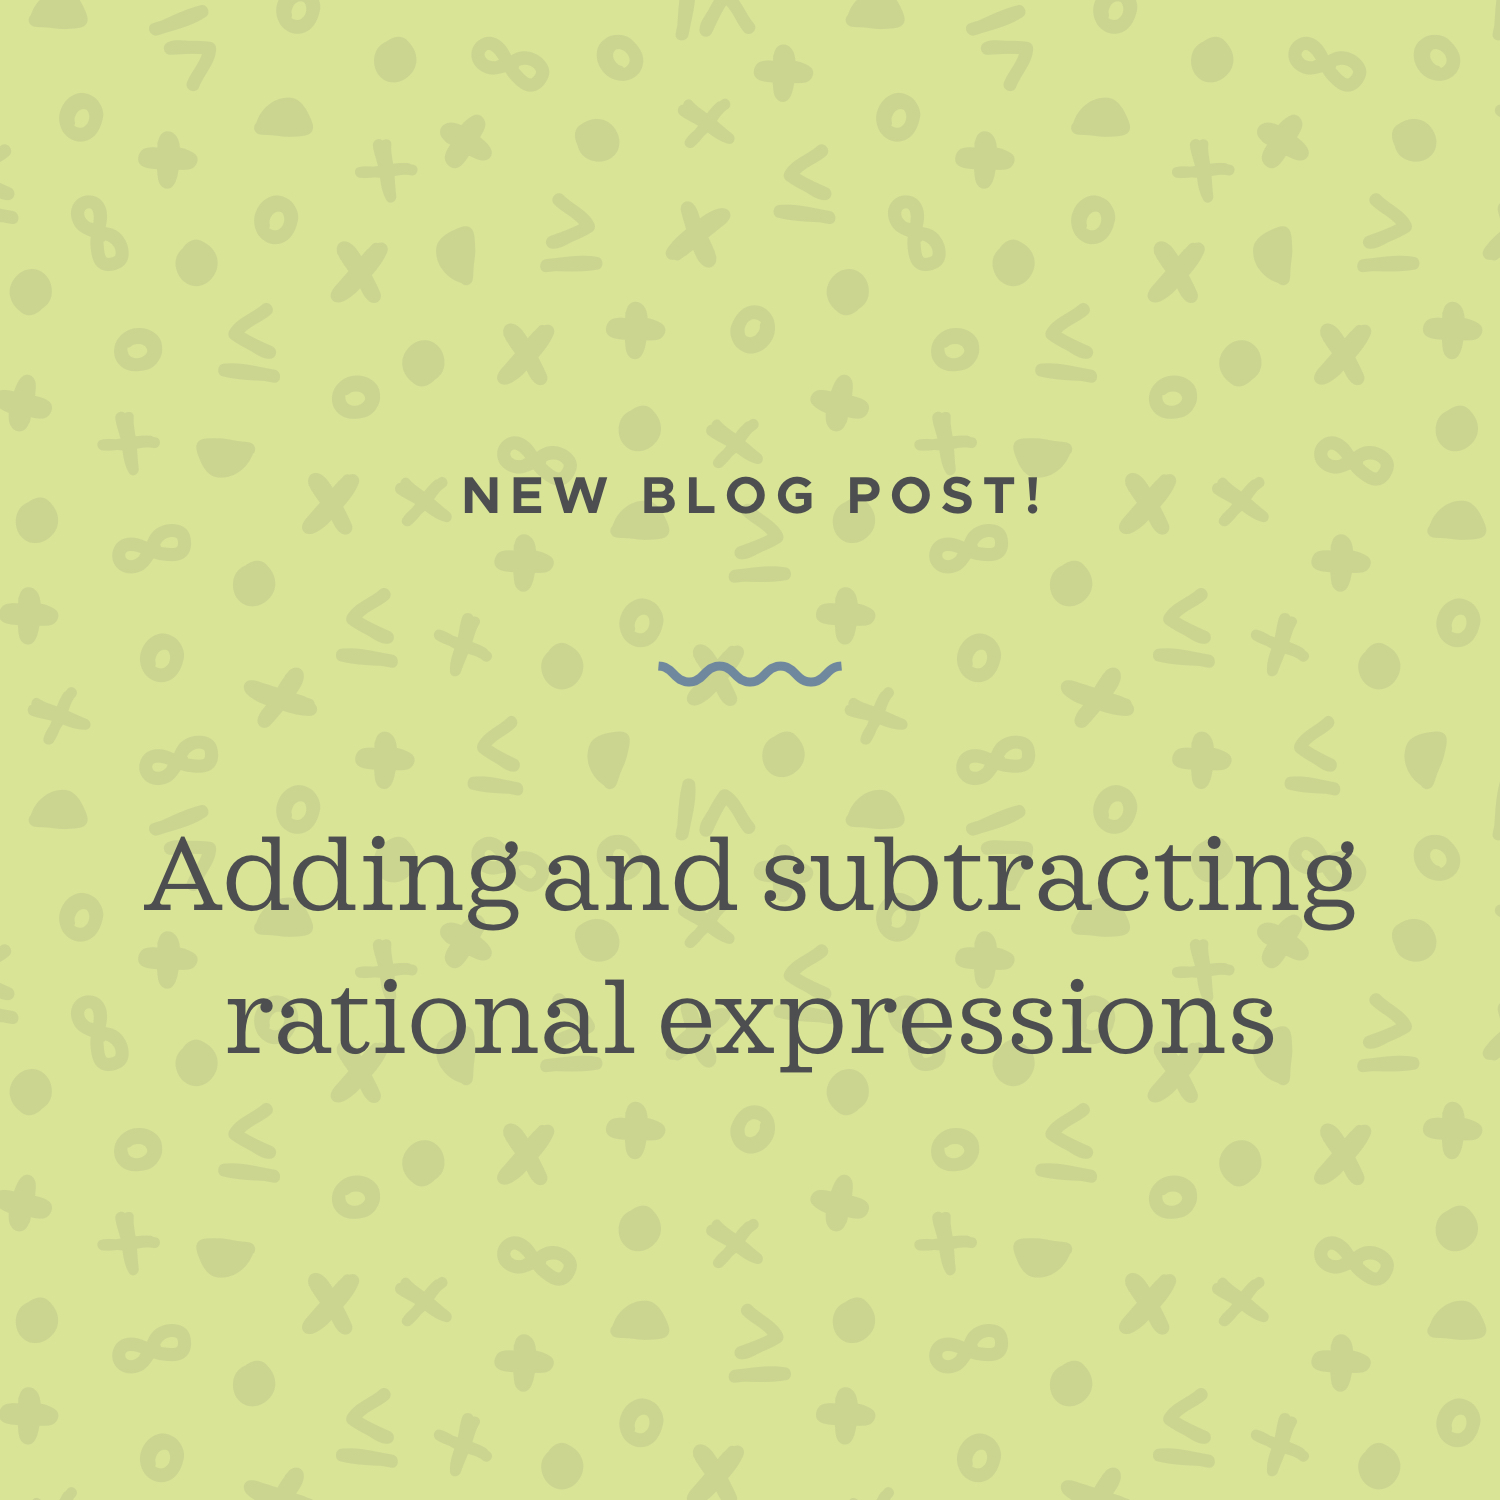 adding subtracting rational expressions.jpeg